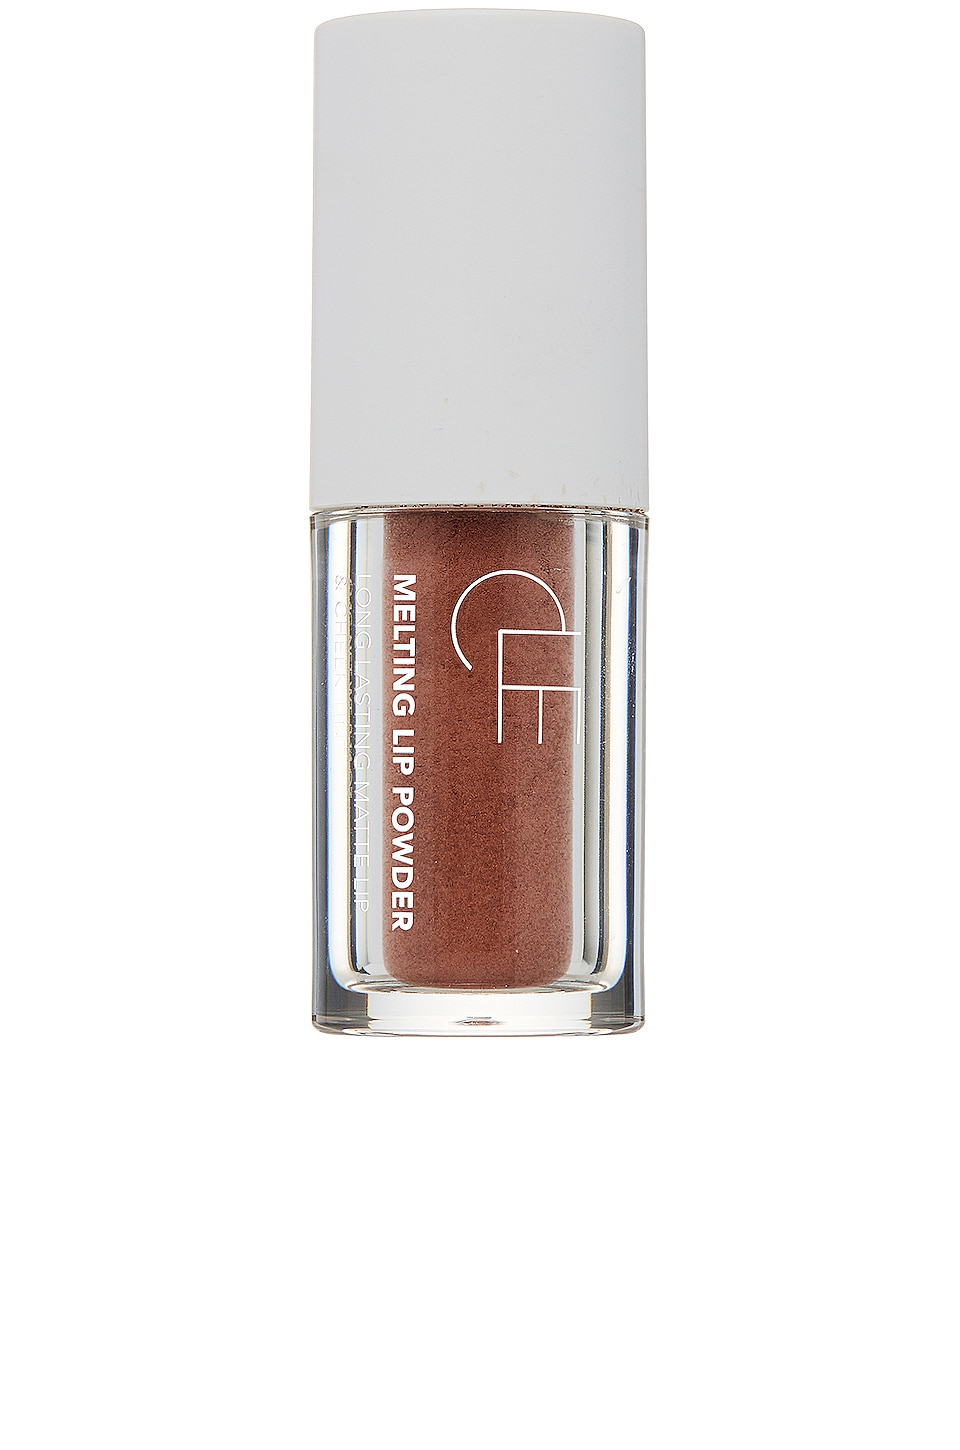 CLE COSMETICS Melting Lip Powder in Hot Choco